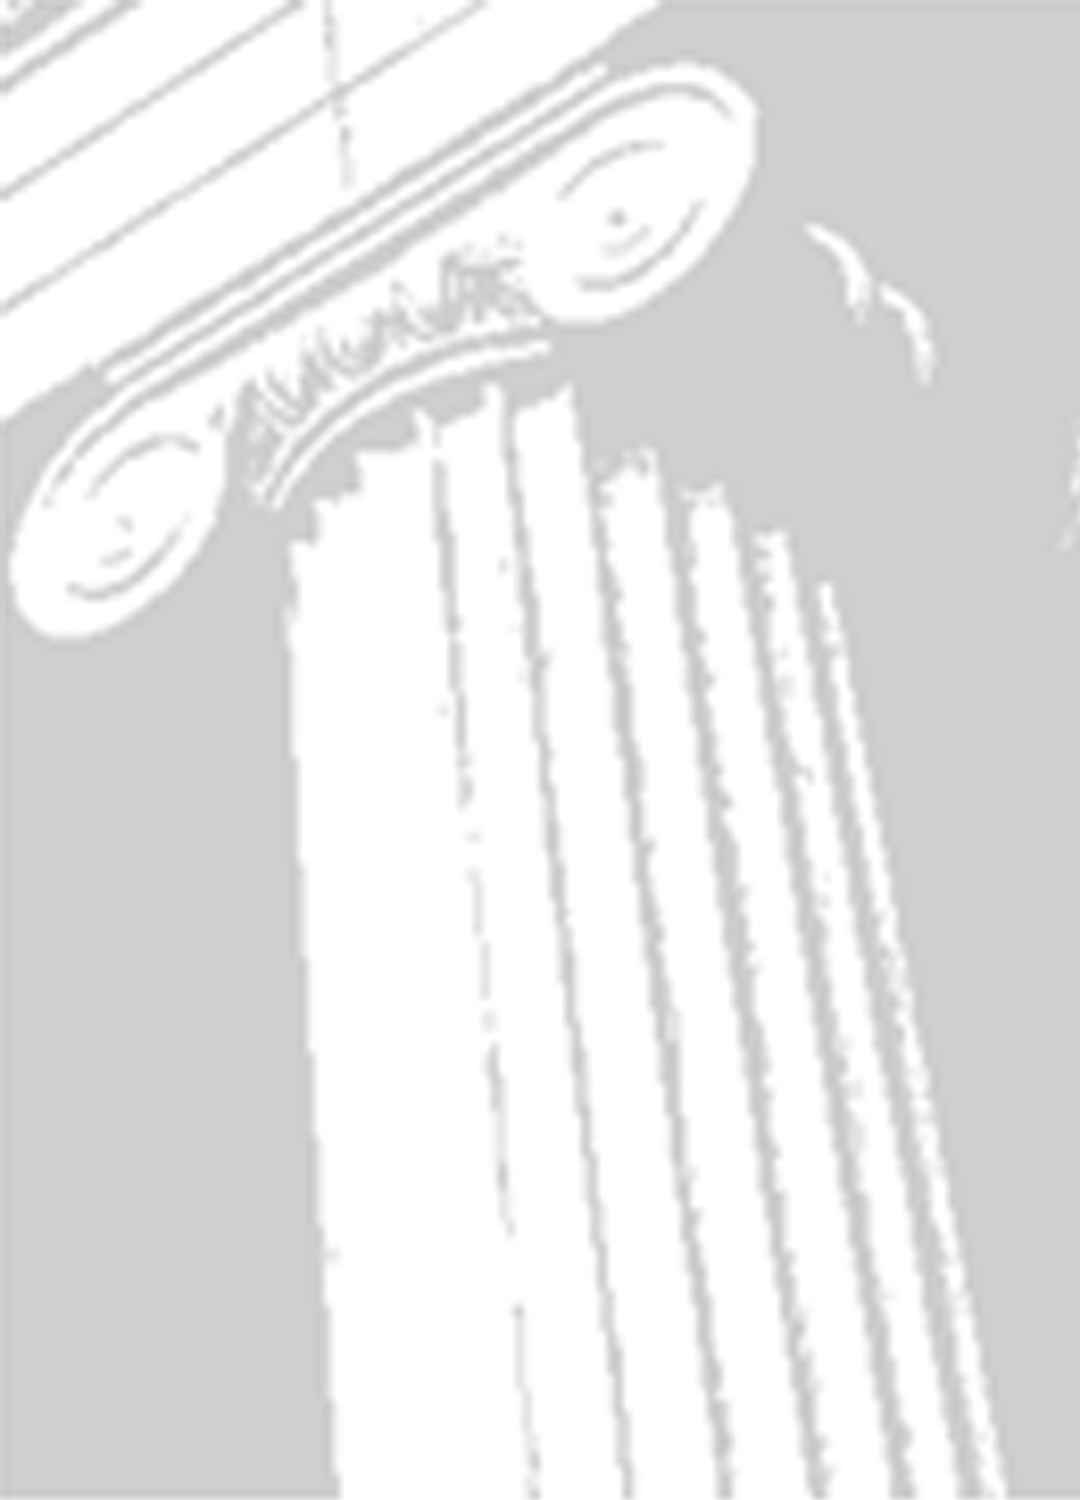 Abstract Greek Column Architecture